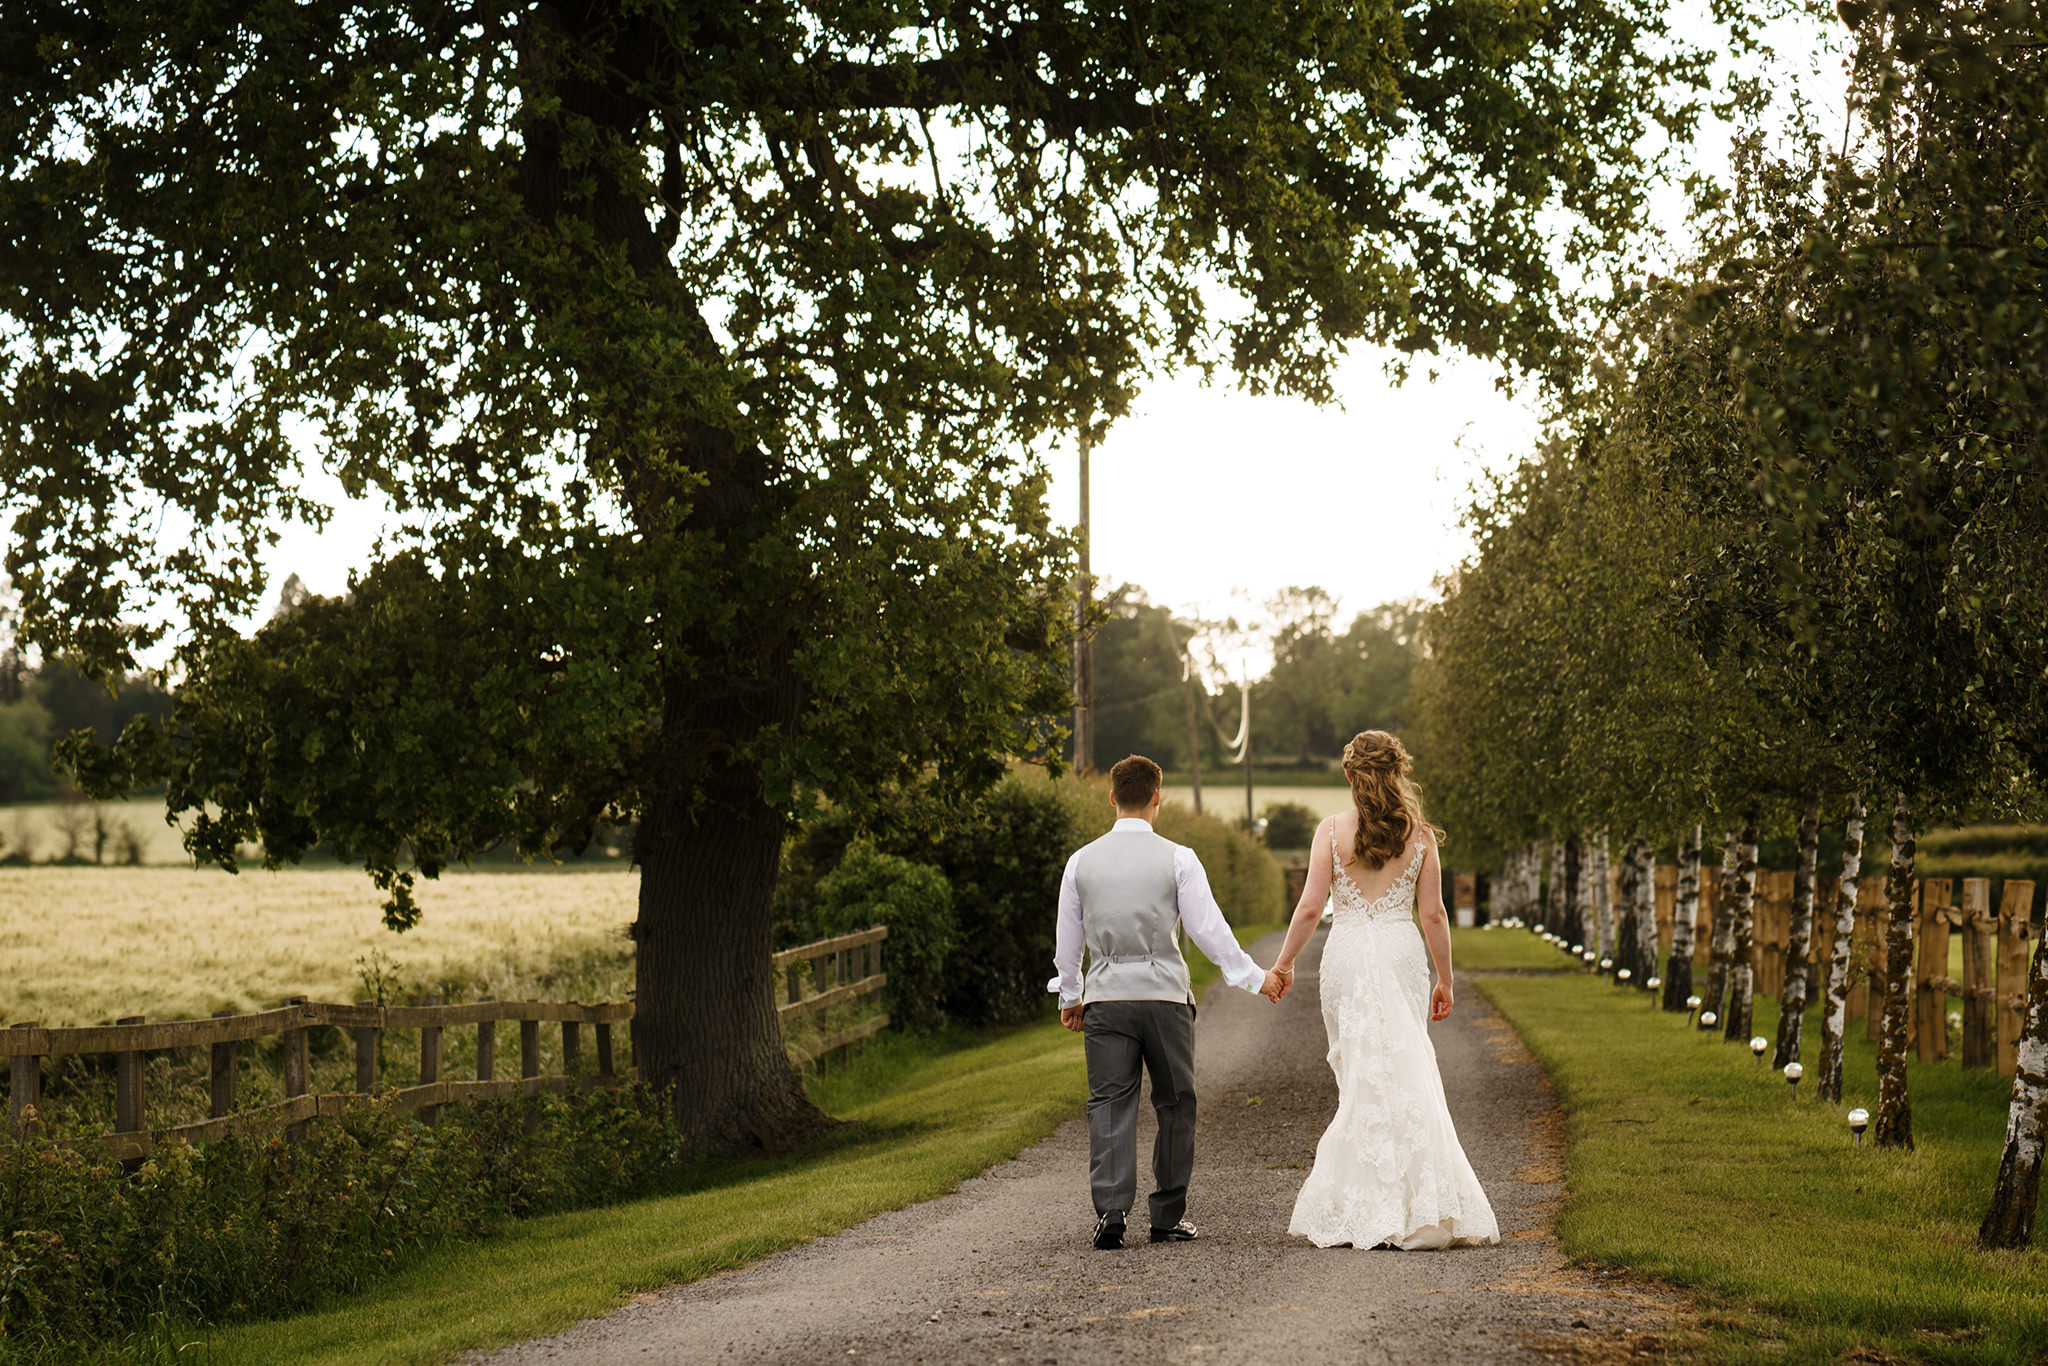 Victoria and Timothy - Stratton Court Barn, Oxfordshire